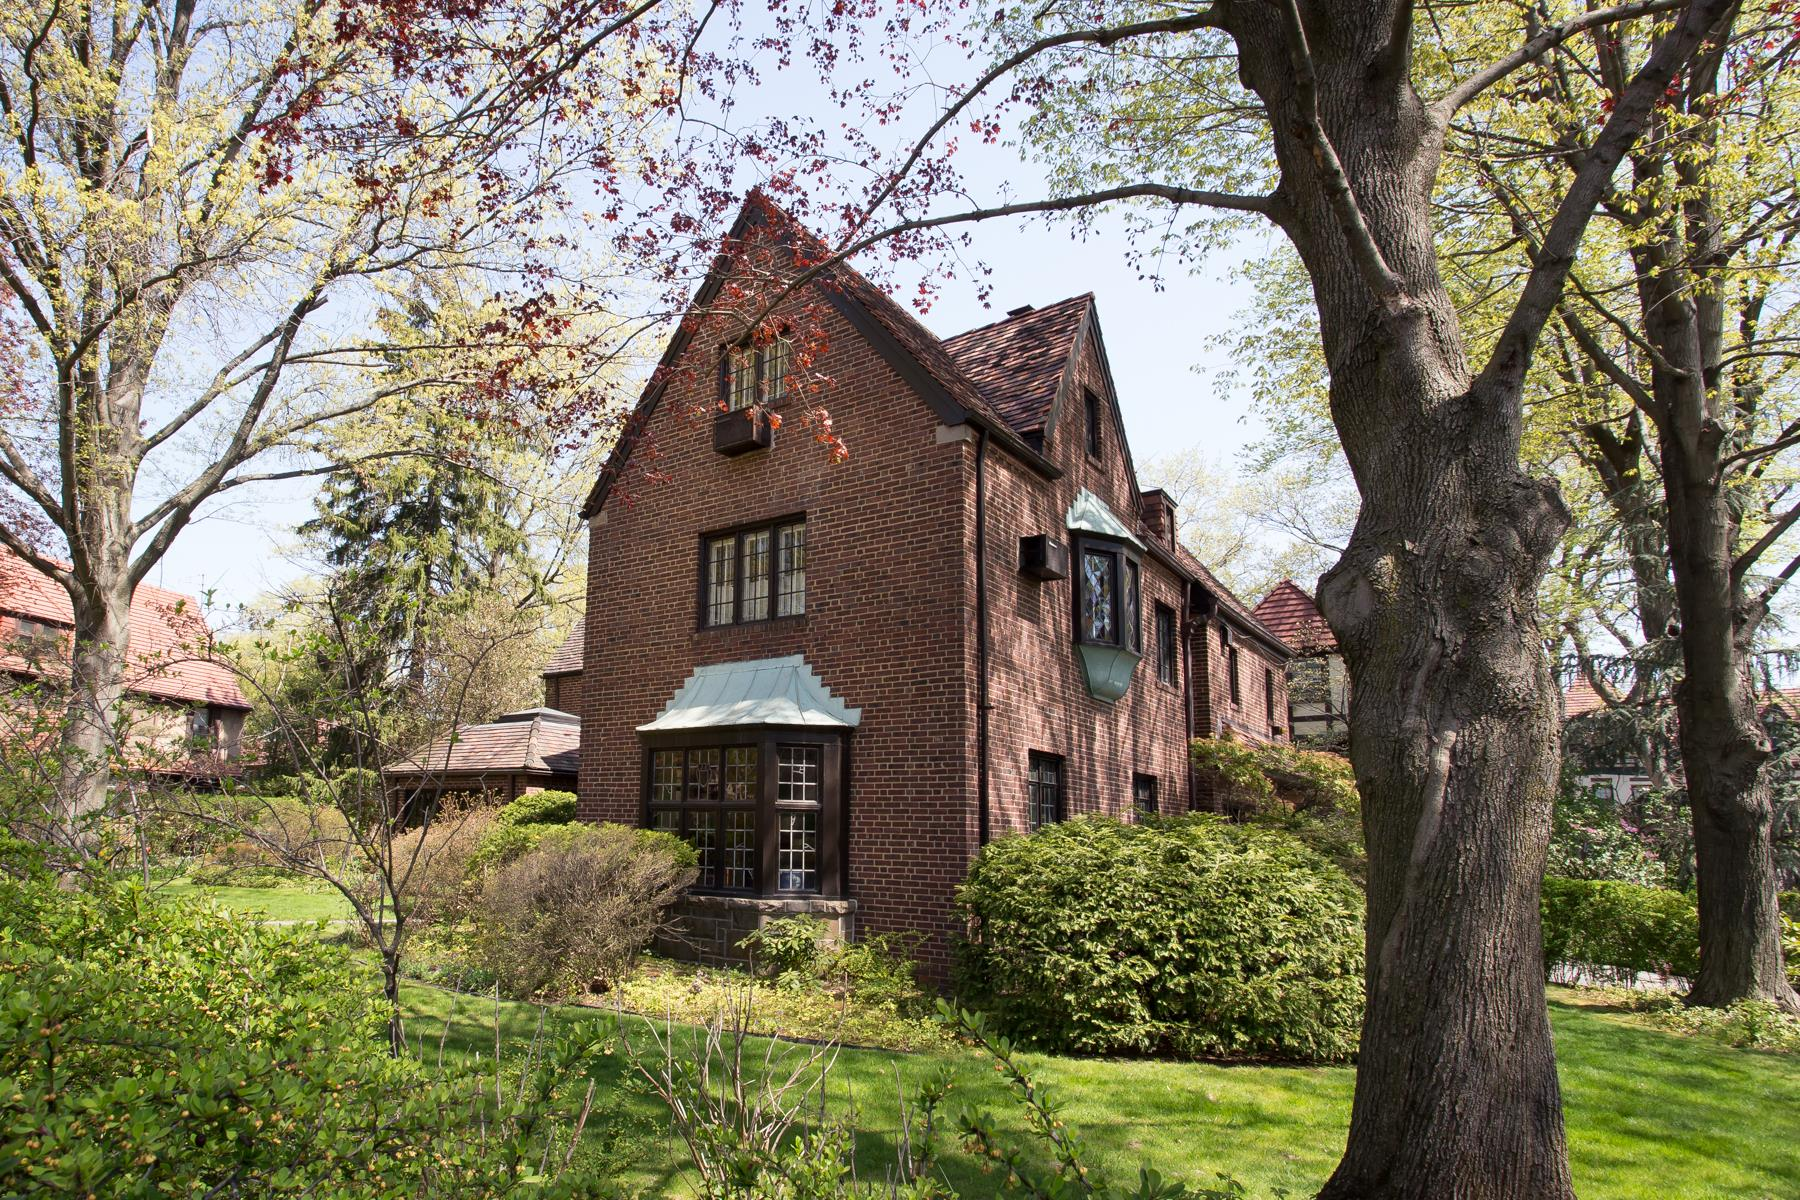 Additional photo for property listing at 60 DEEPDENE ROAD, FOREST HILLS GARDENS 60 DEEPDENE ROAD, FOREST HILLS GARDENS Forest Hills, Nueva York 11375 Estados Unidos